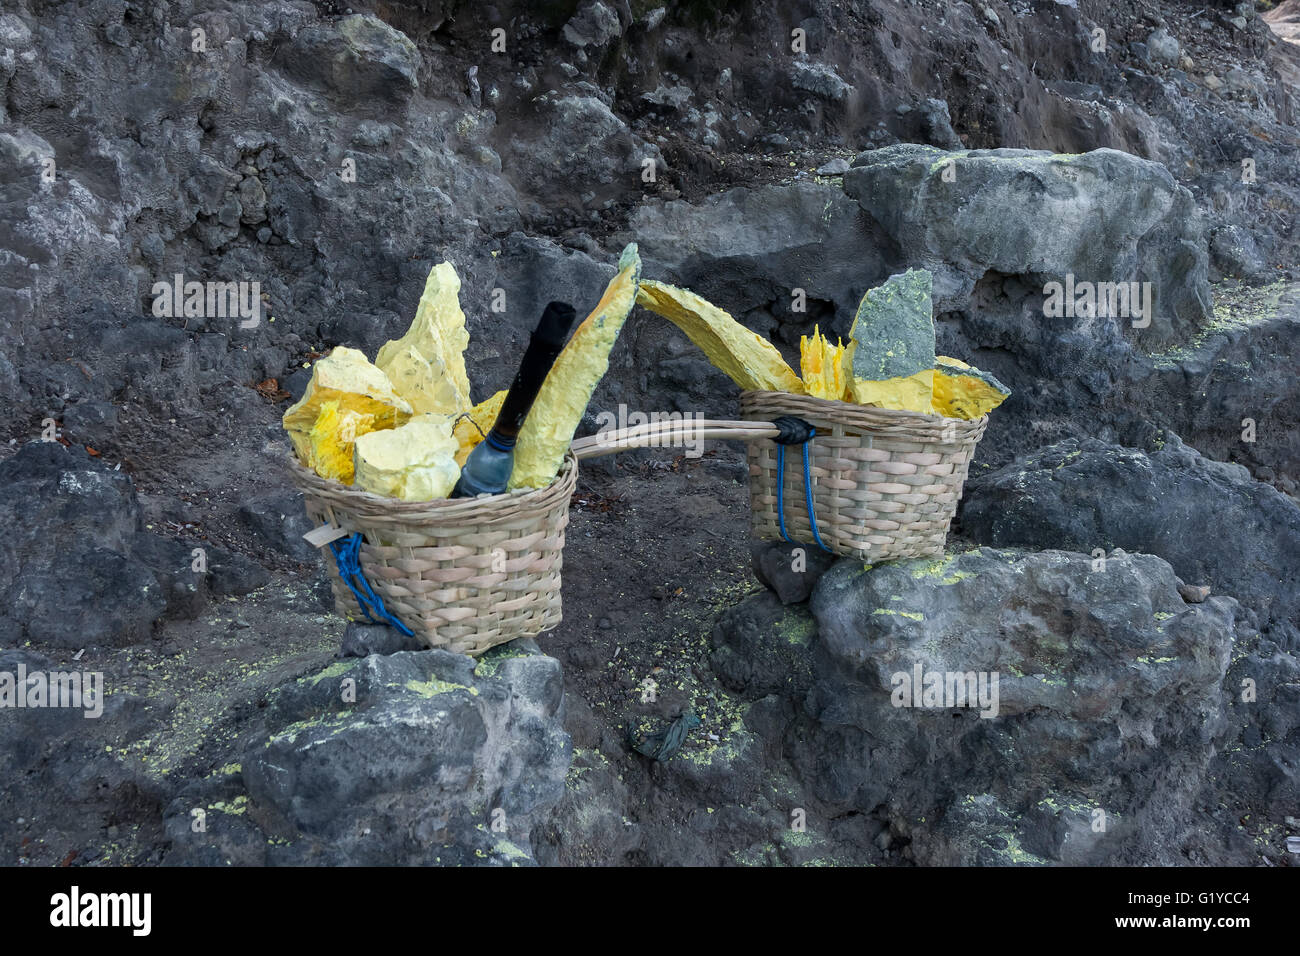 Sulfur Mining at Kawa Ijen Volcano, Java Indonesia. - Stock Image